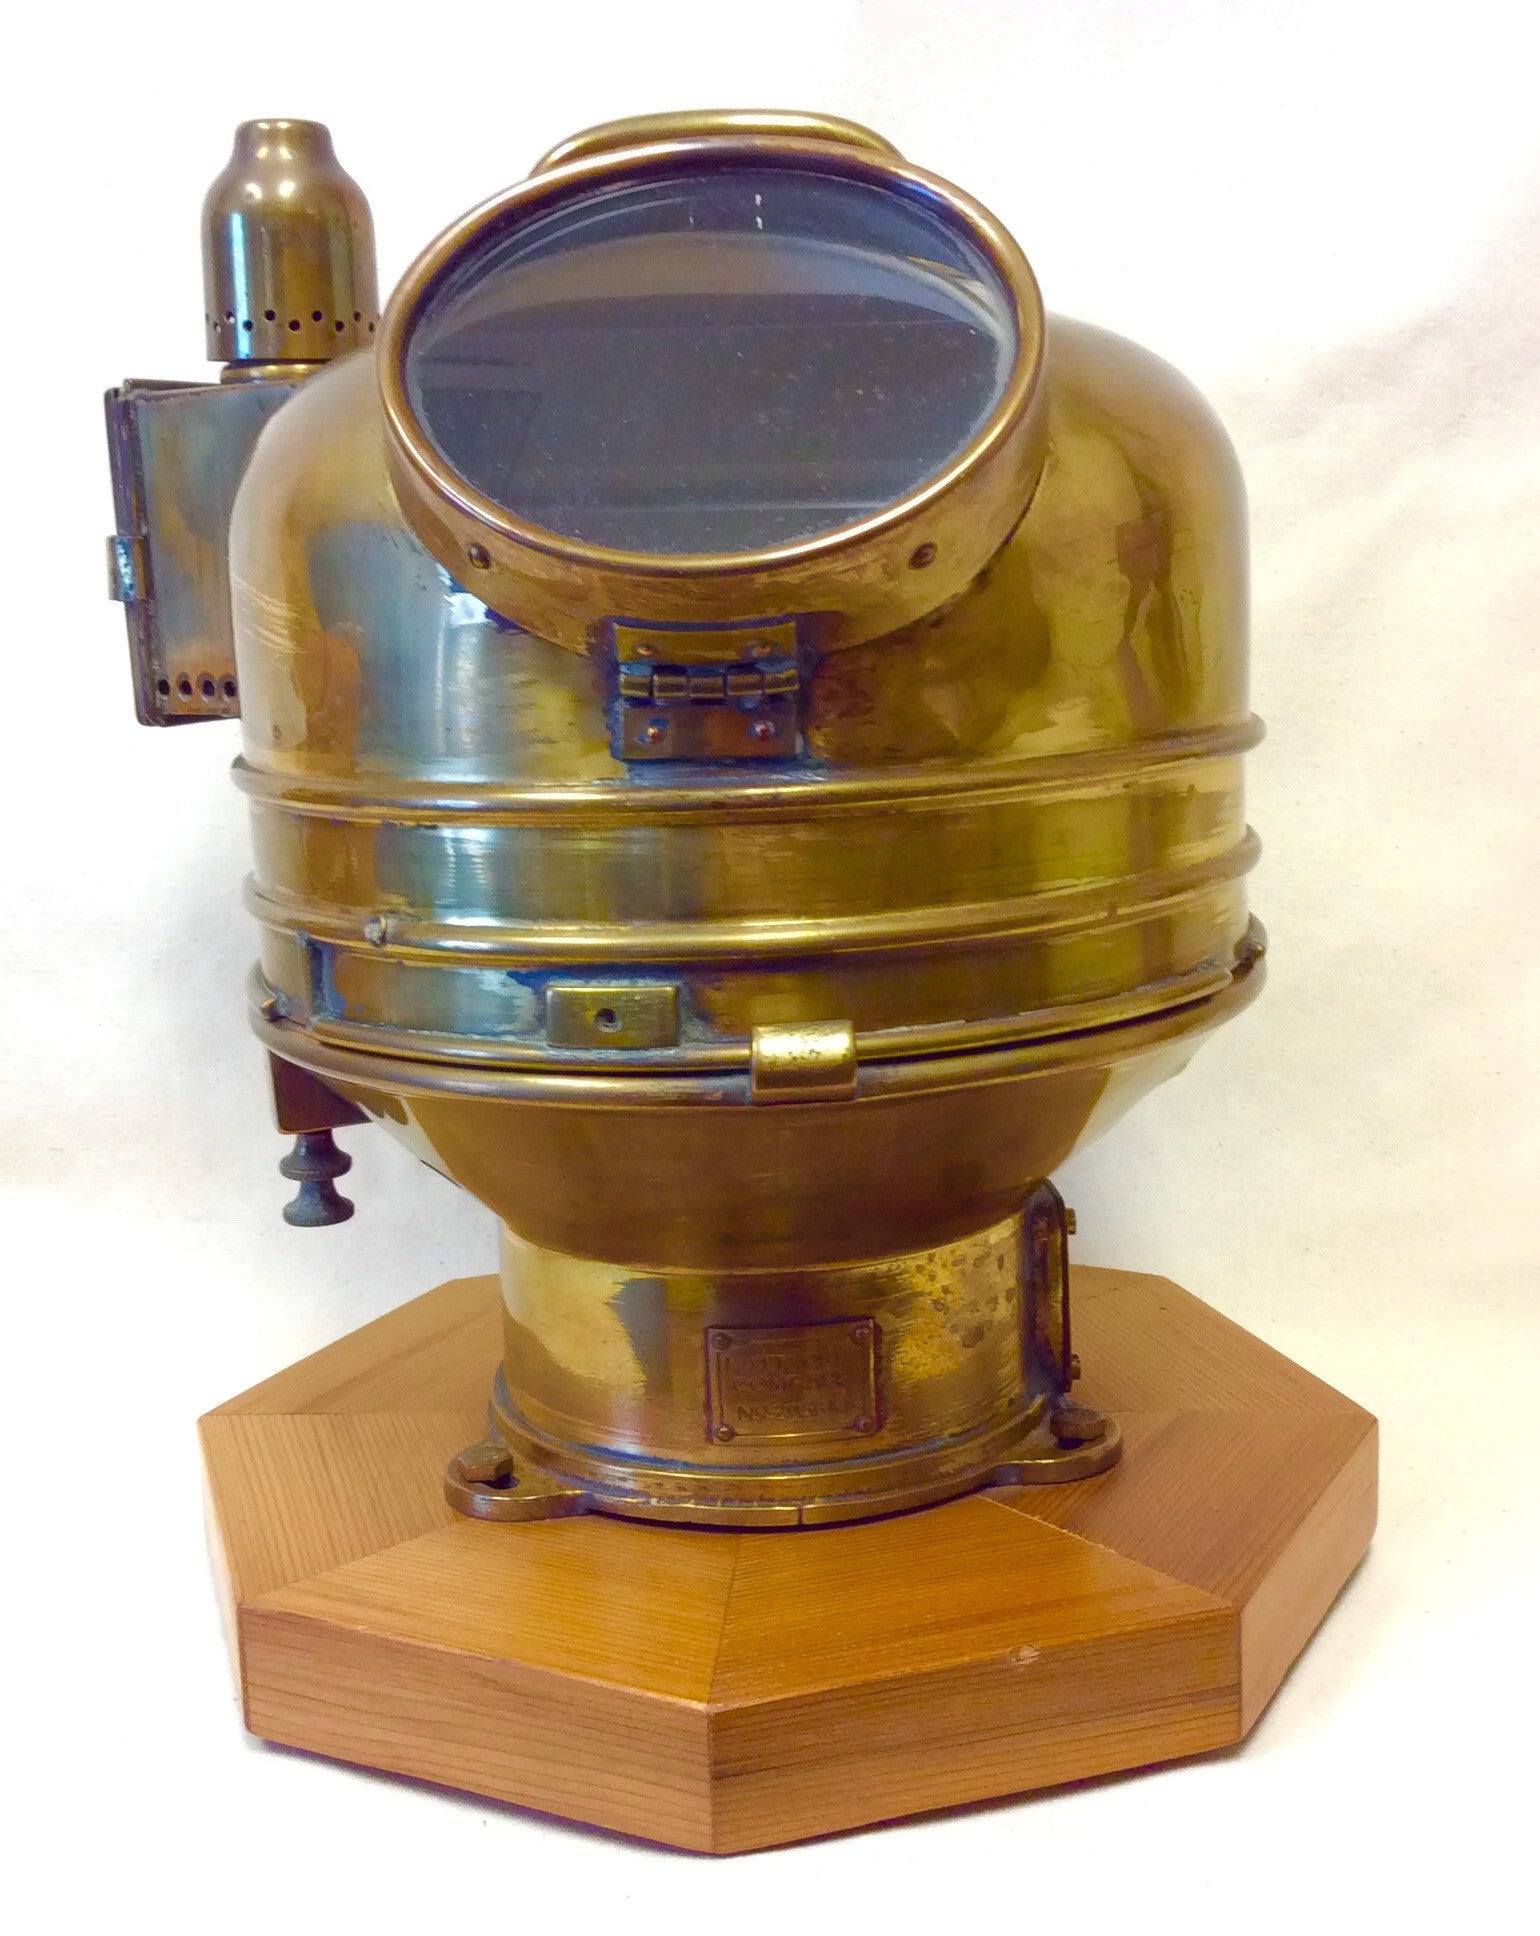 Binnacle, vintage brass